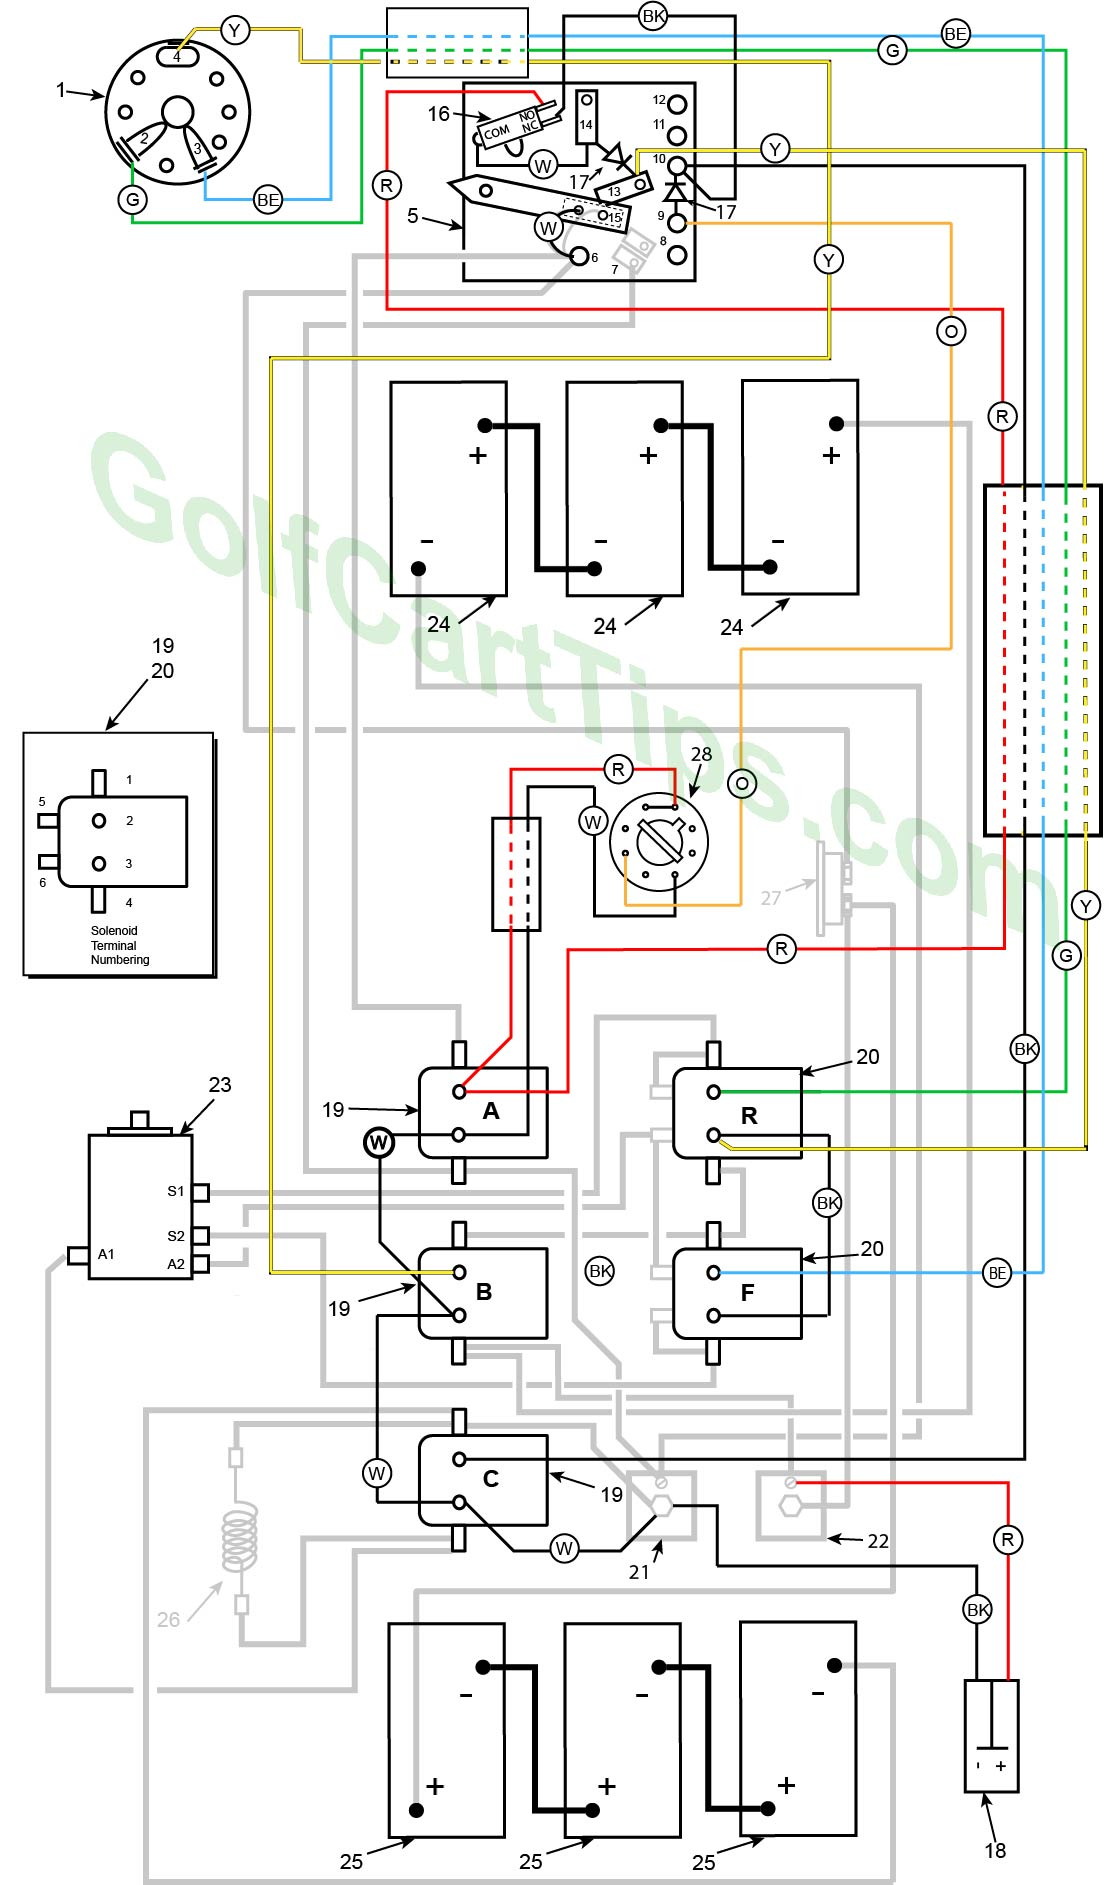 hight resolution of 1971 model de control circuit wiring diagram for 16 gauge wire harley davidson golf cart